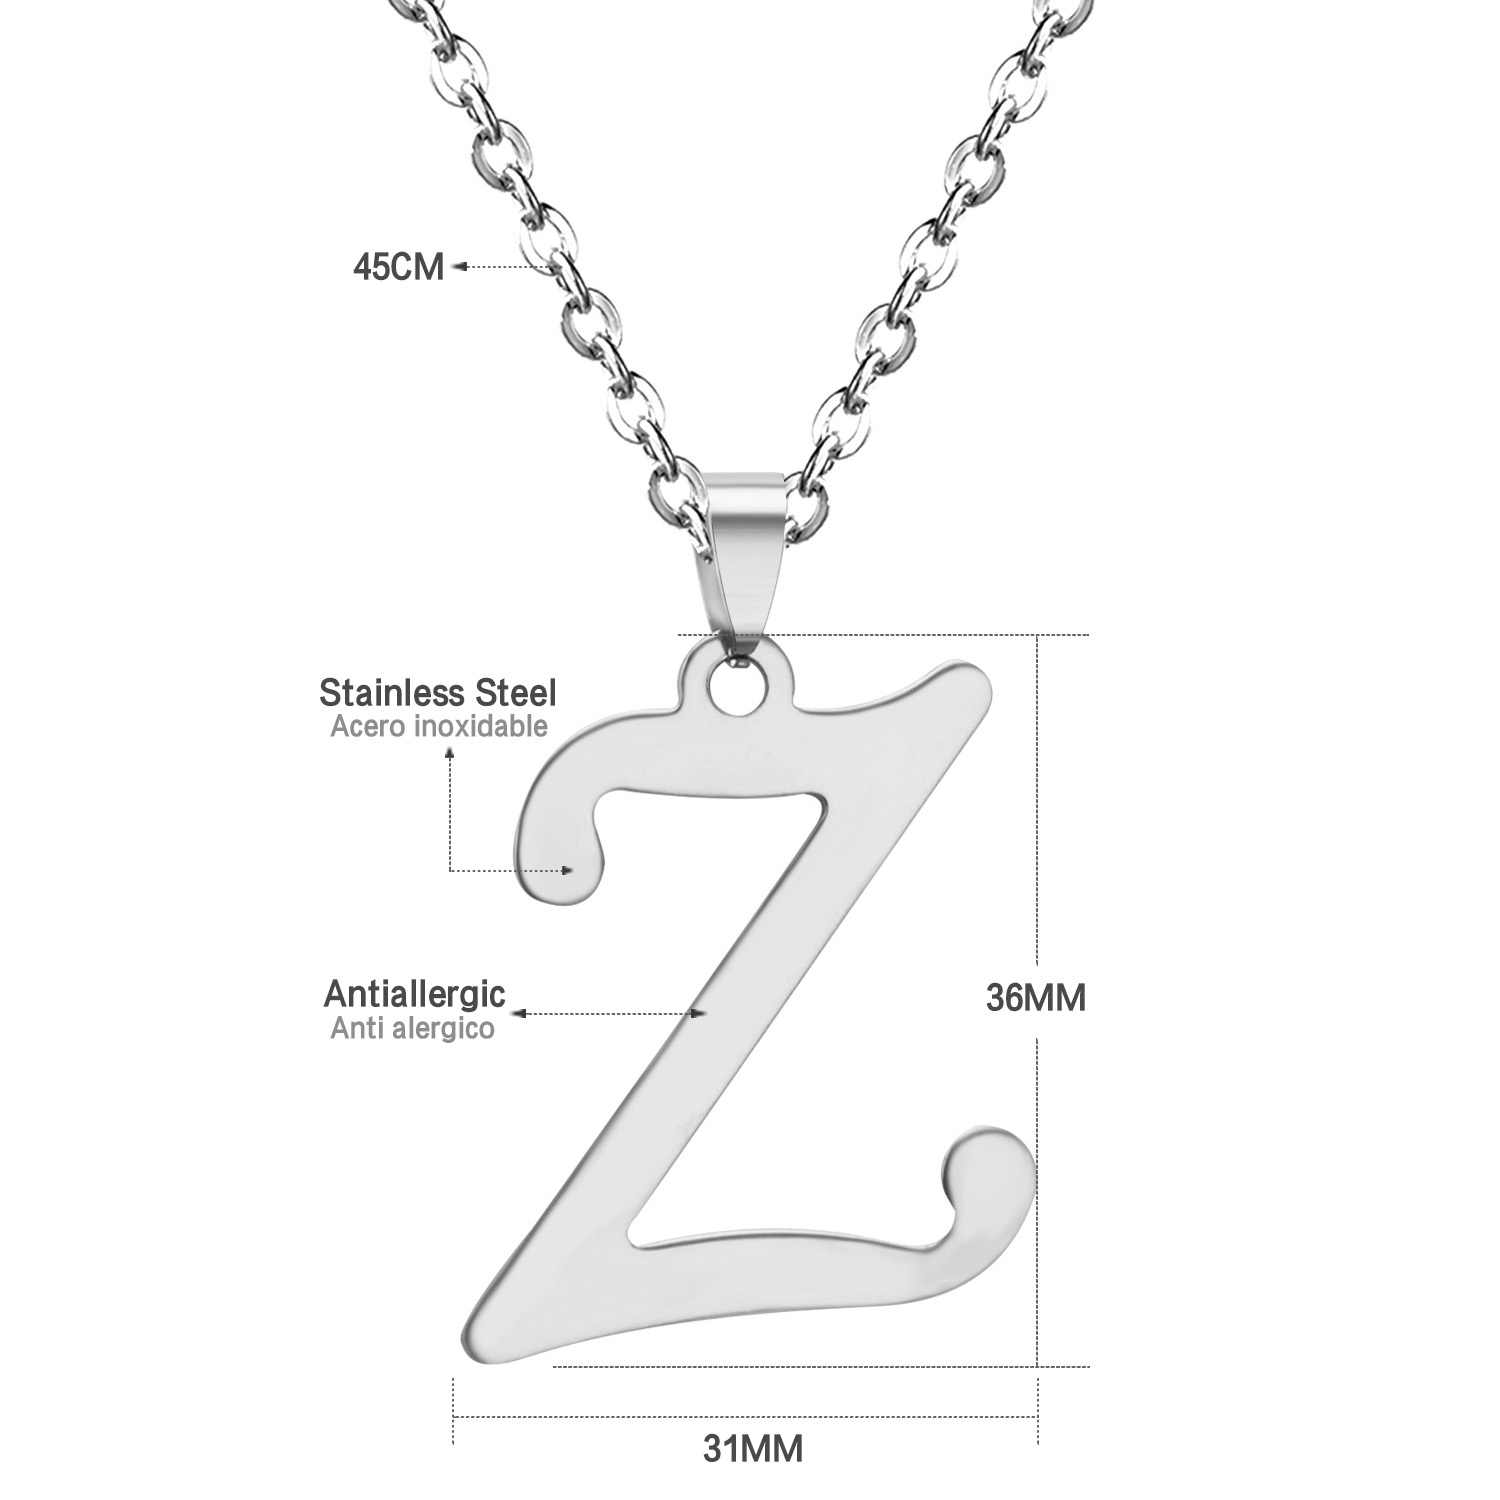 ASONSTEEL 5 Pcs/Lot Elegant Metal Letter A-Z Necklace Fashion Alphabet Necklace Silver Stainless Steel,Anti-allergy